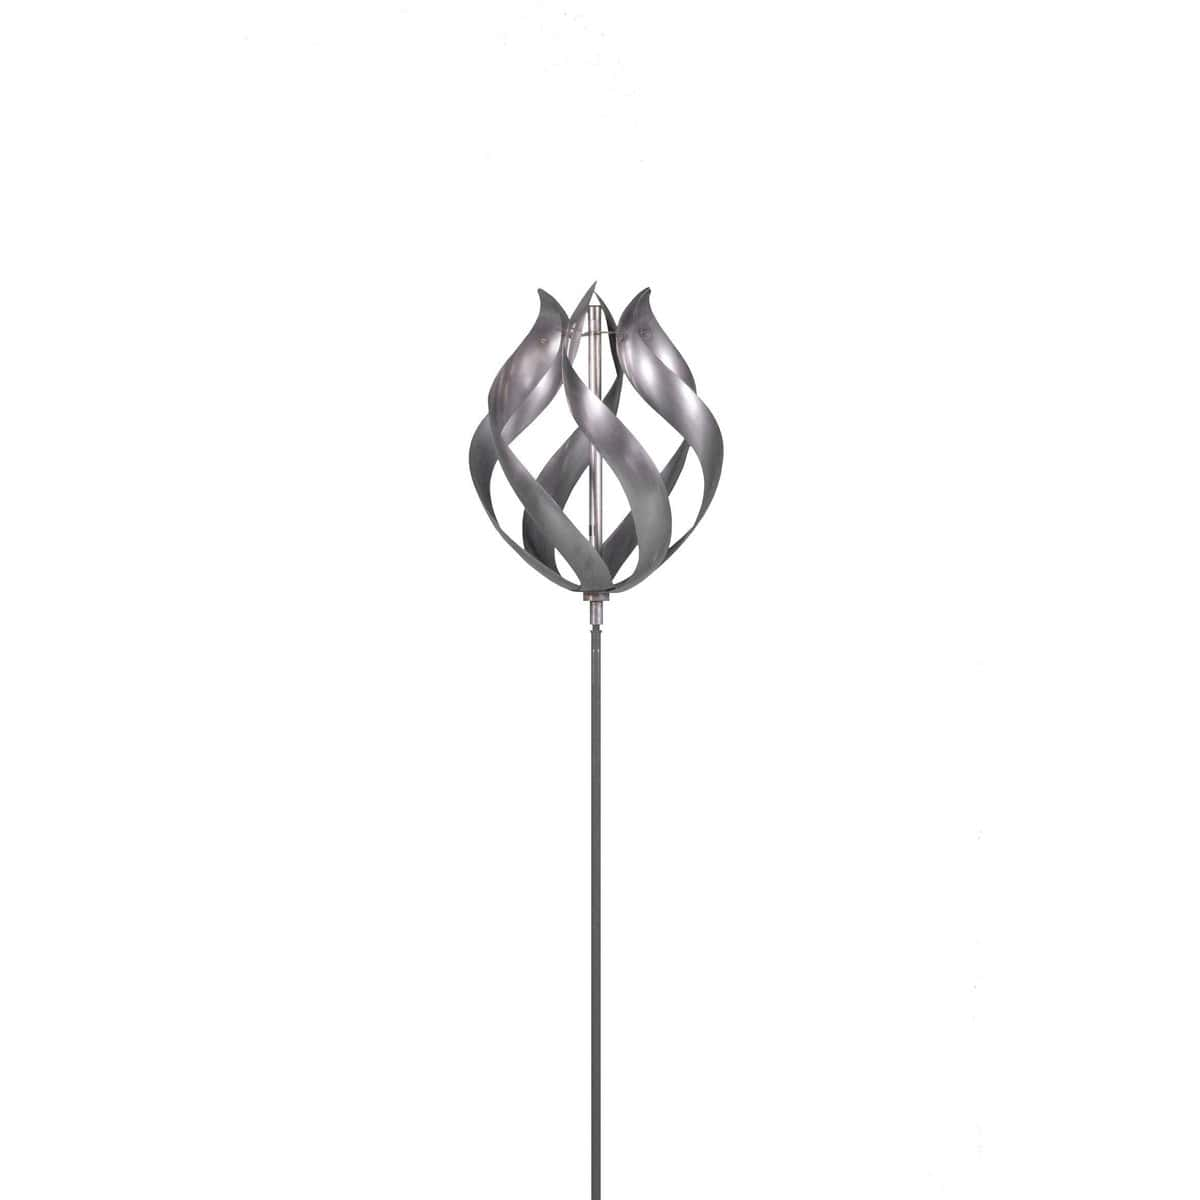 Tulip - Stainless Steel